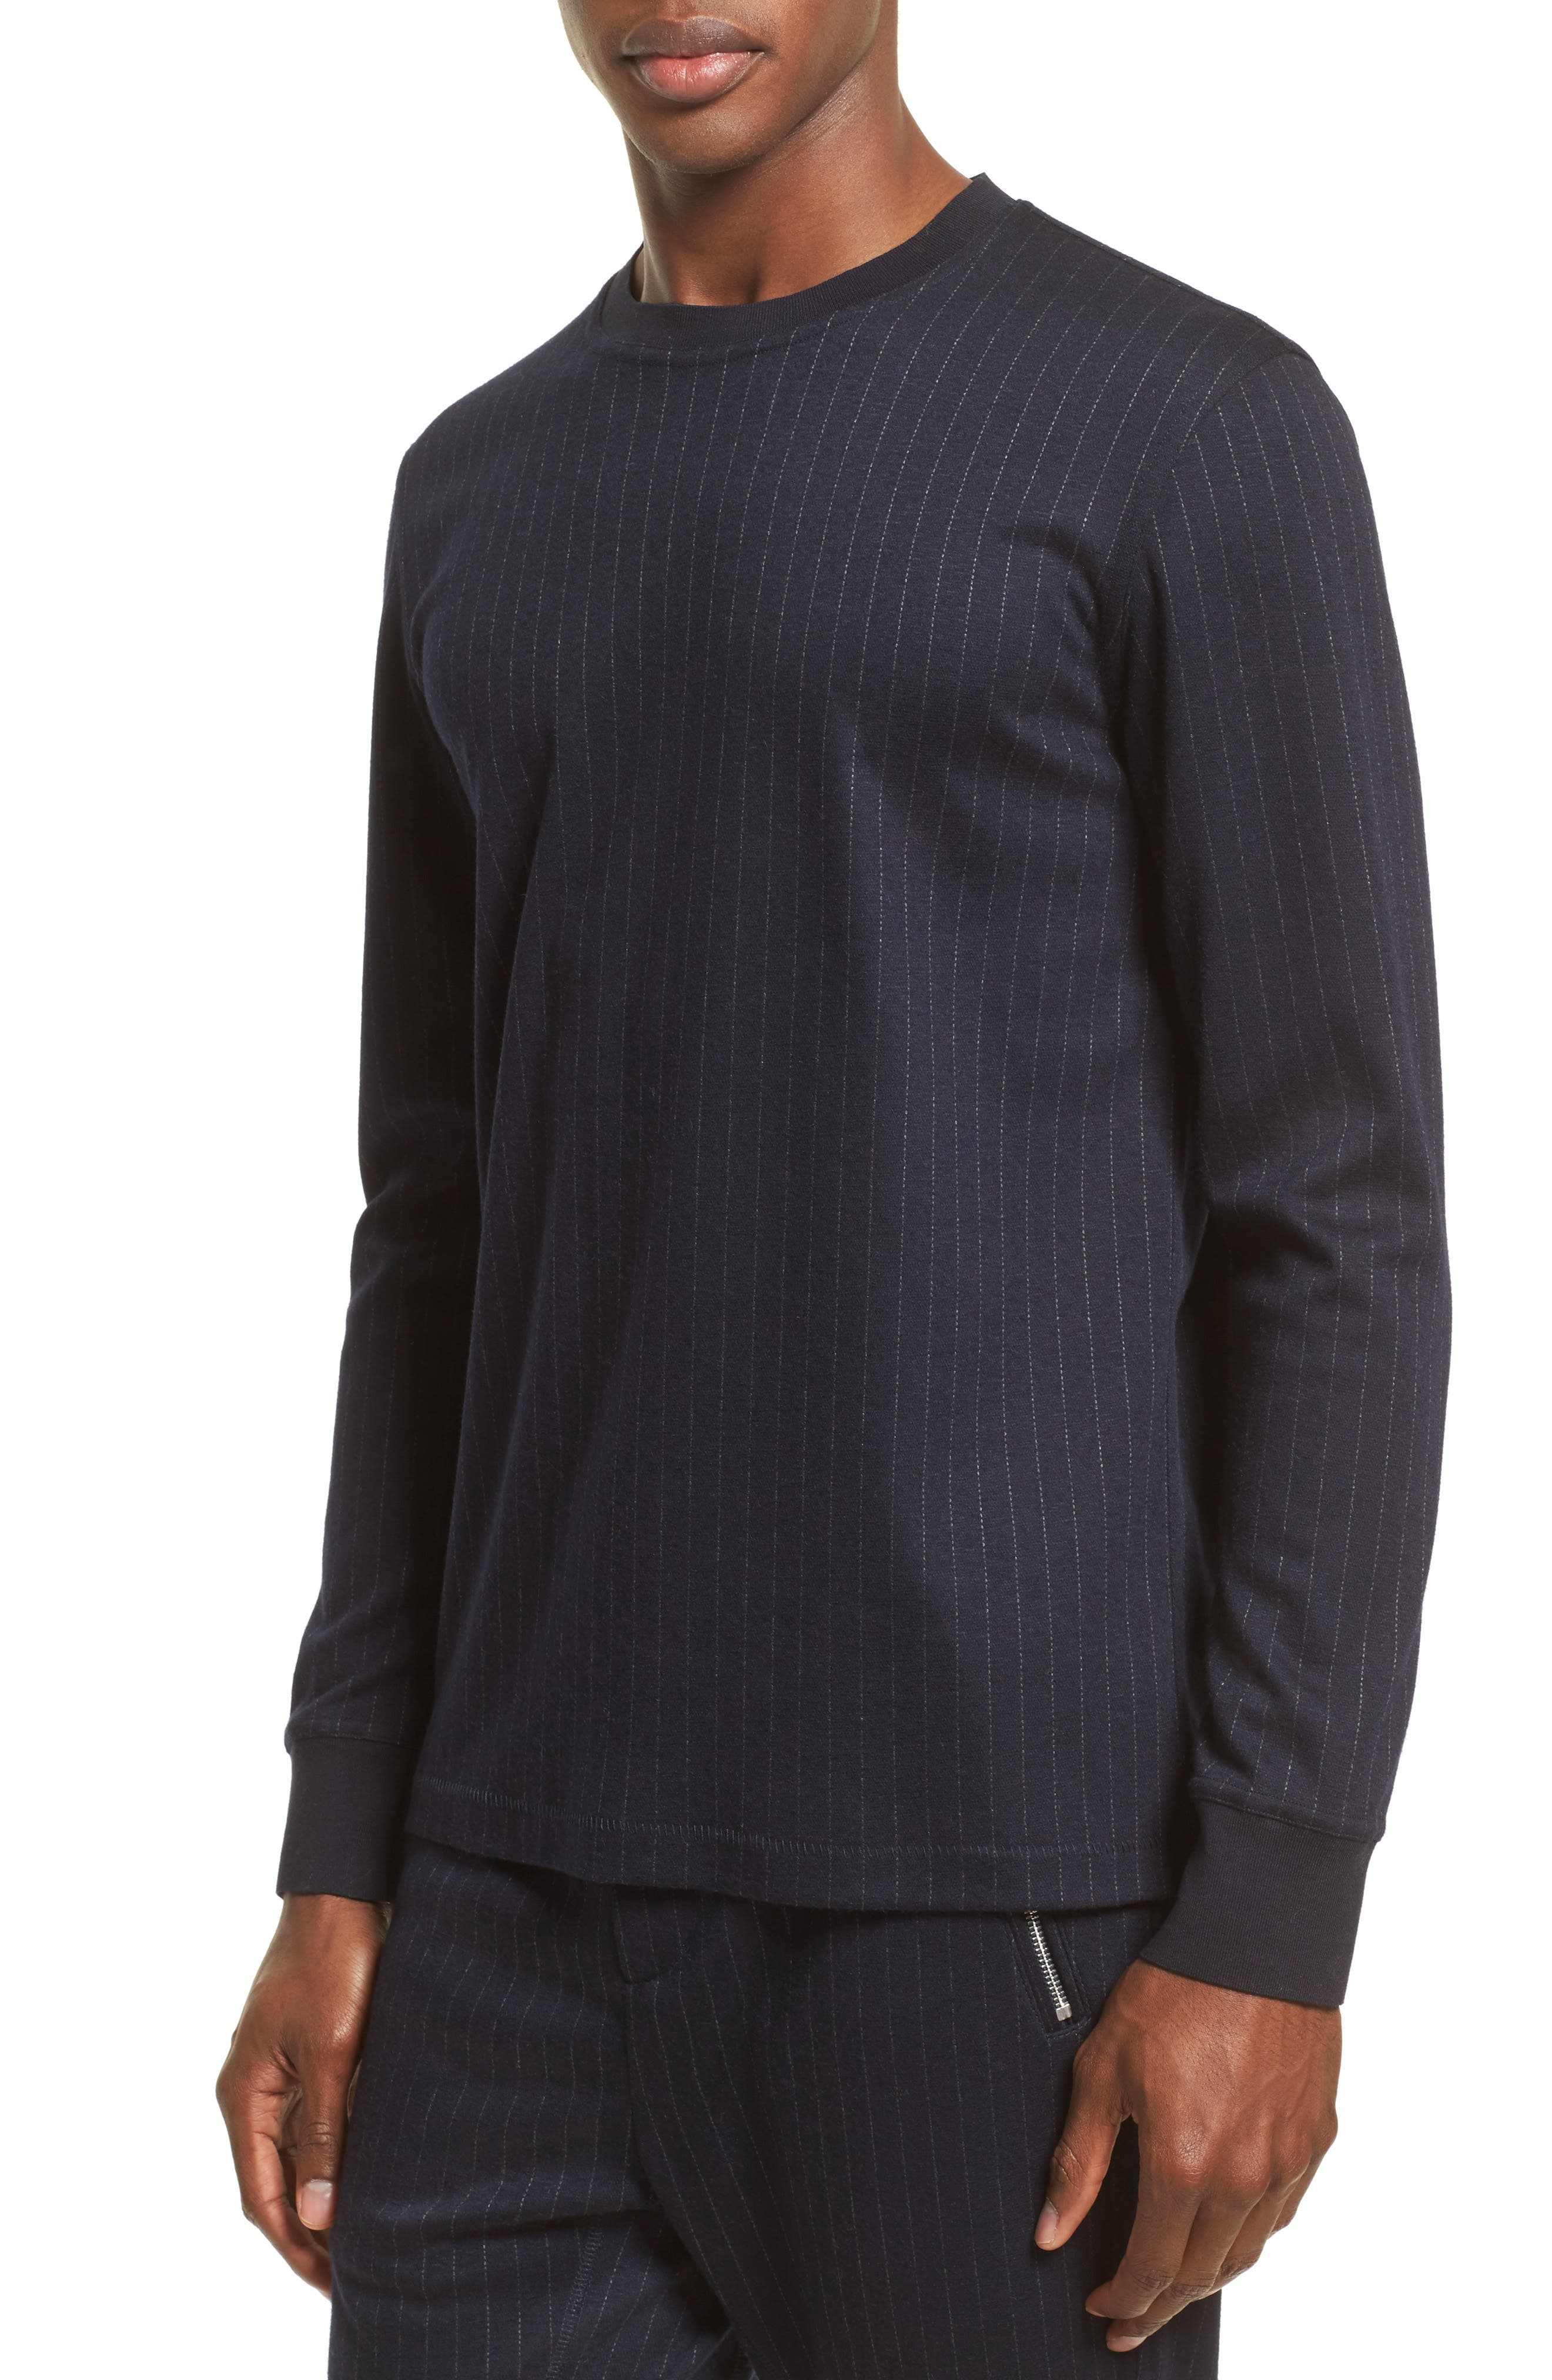 Main Image - 3.1 Phillip Lim Stripe Long Sleeve T-Shirt